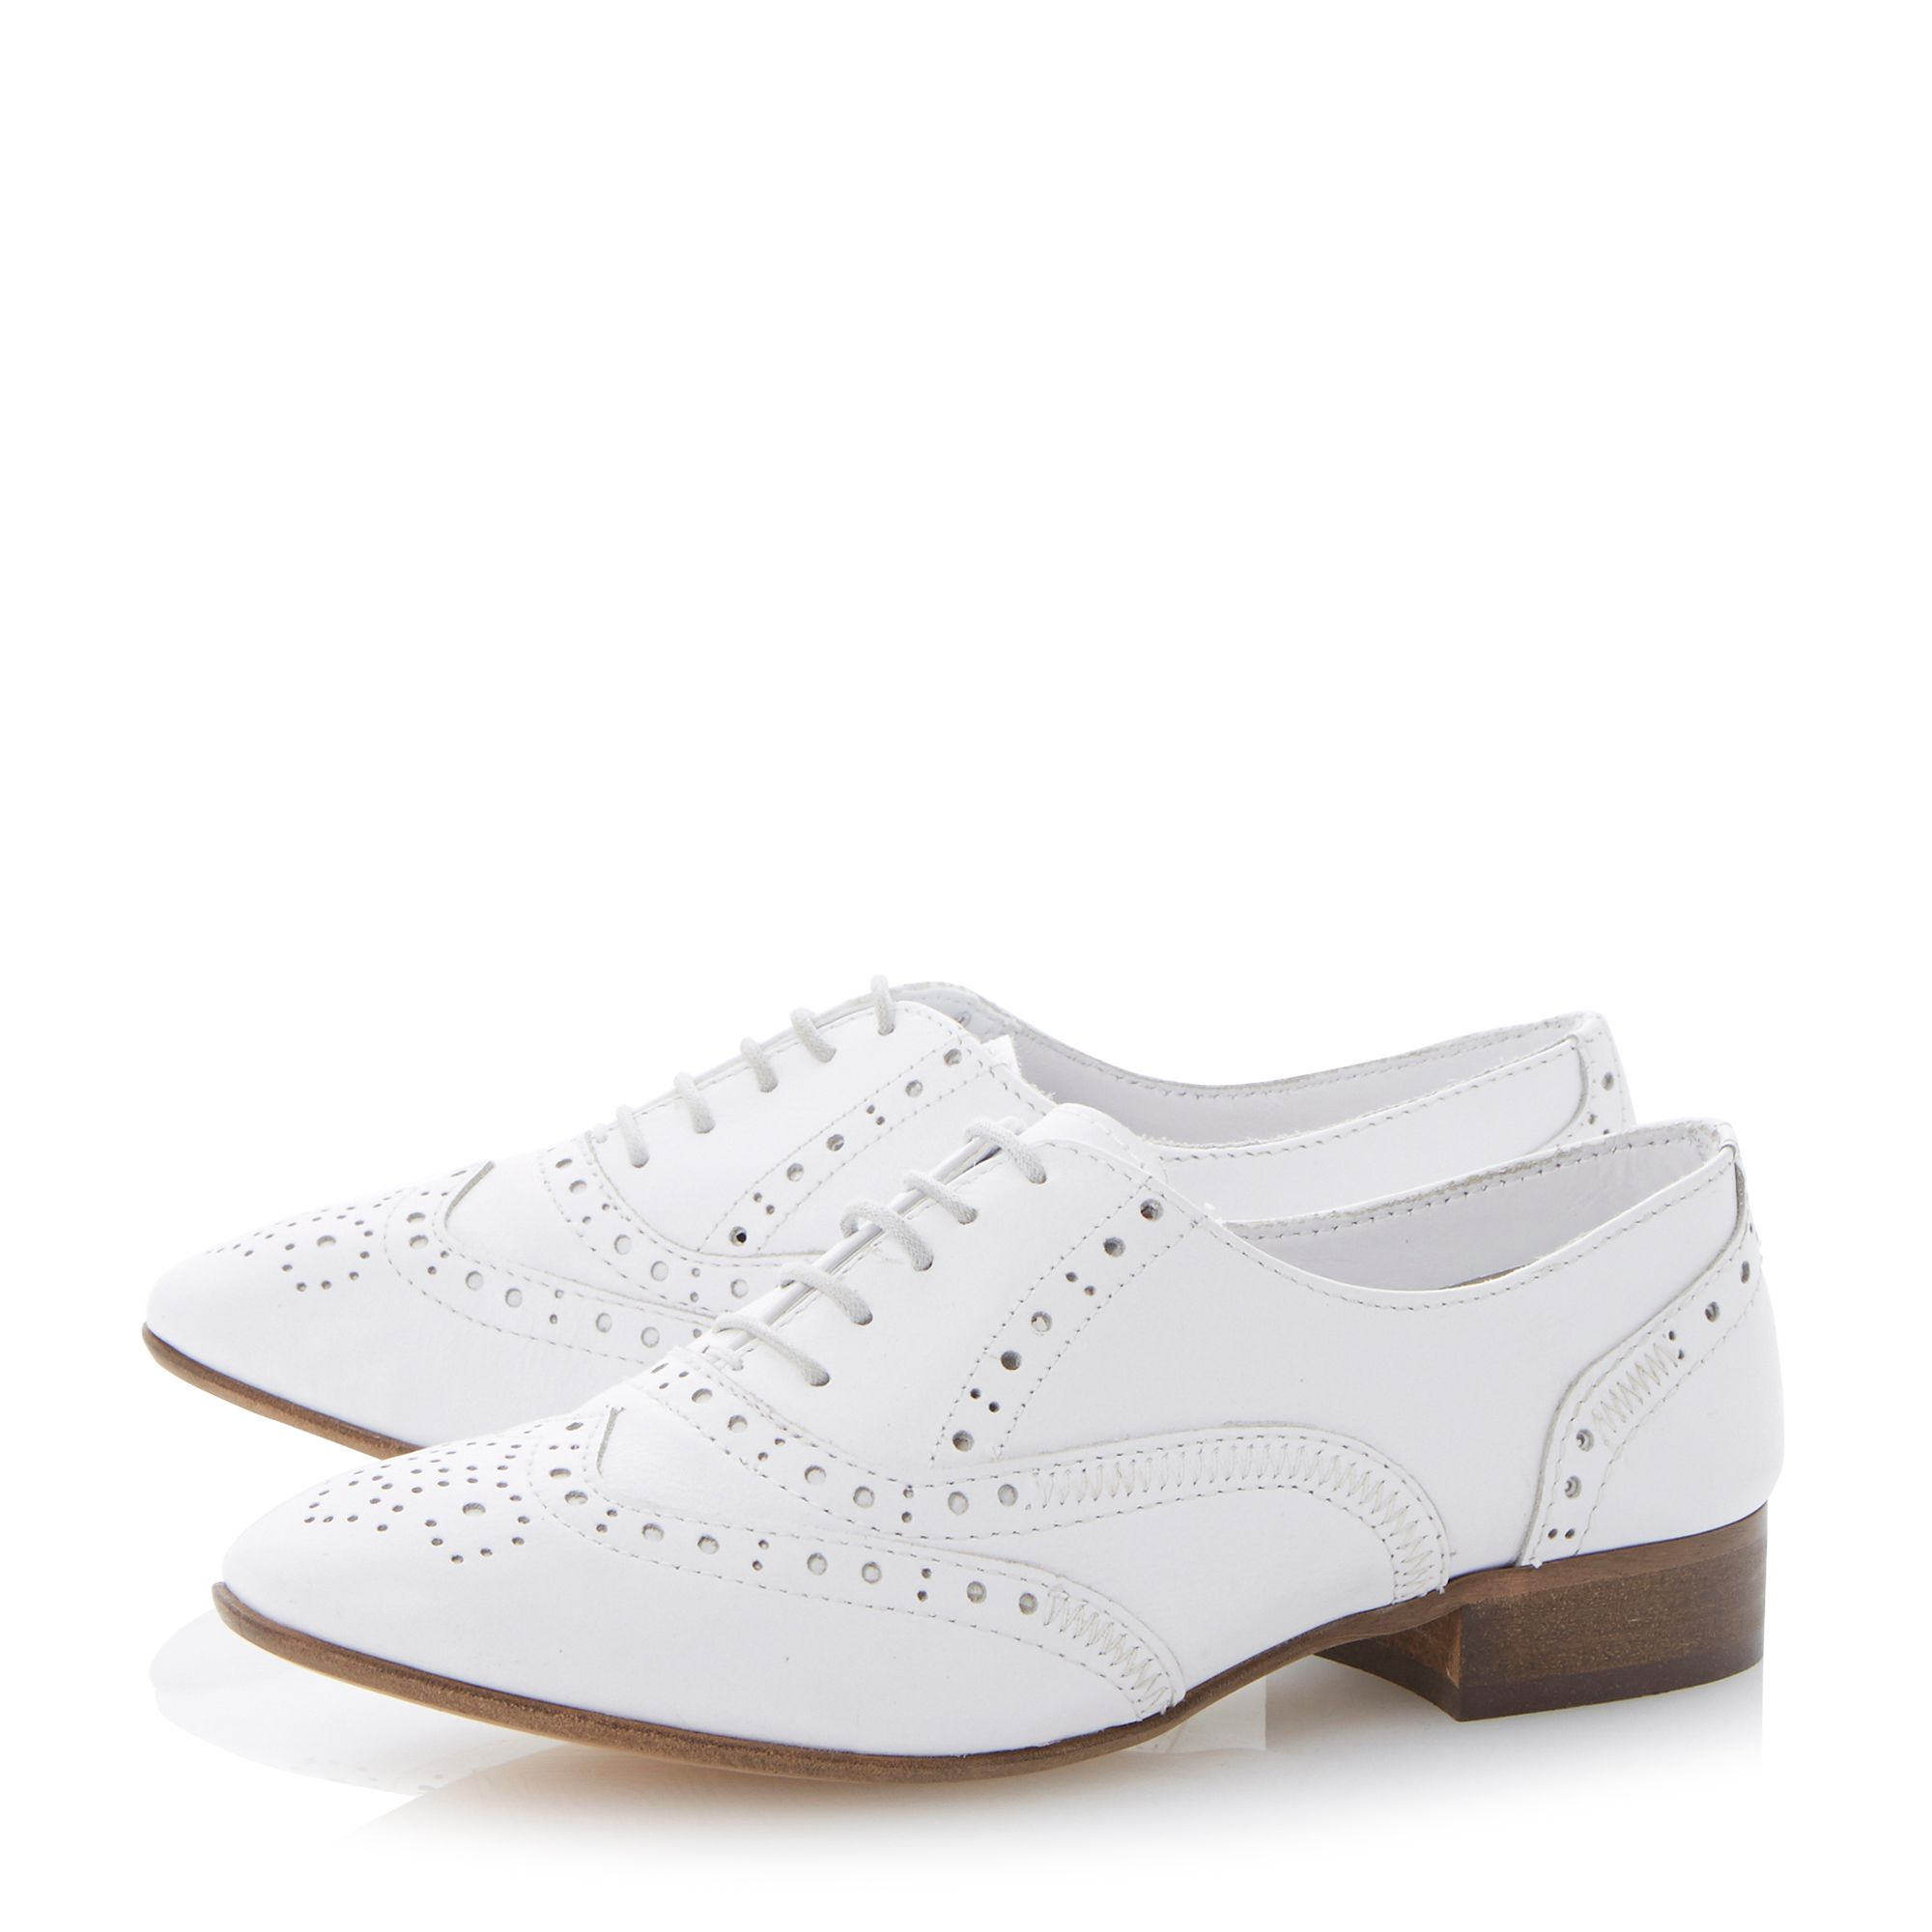 Lenni leather block heel lace up shoes